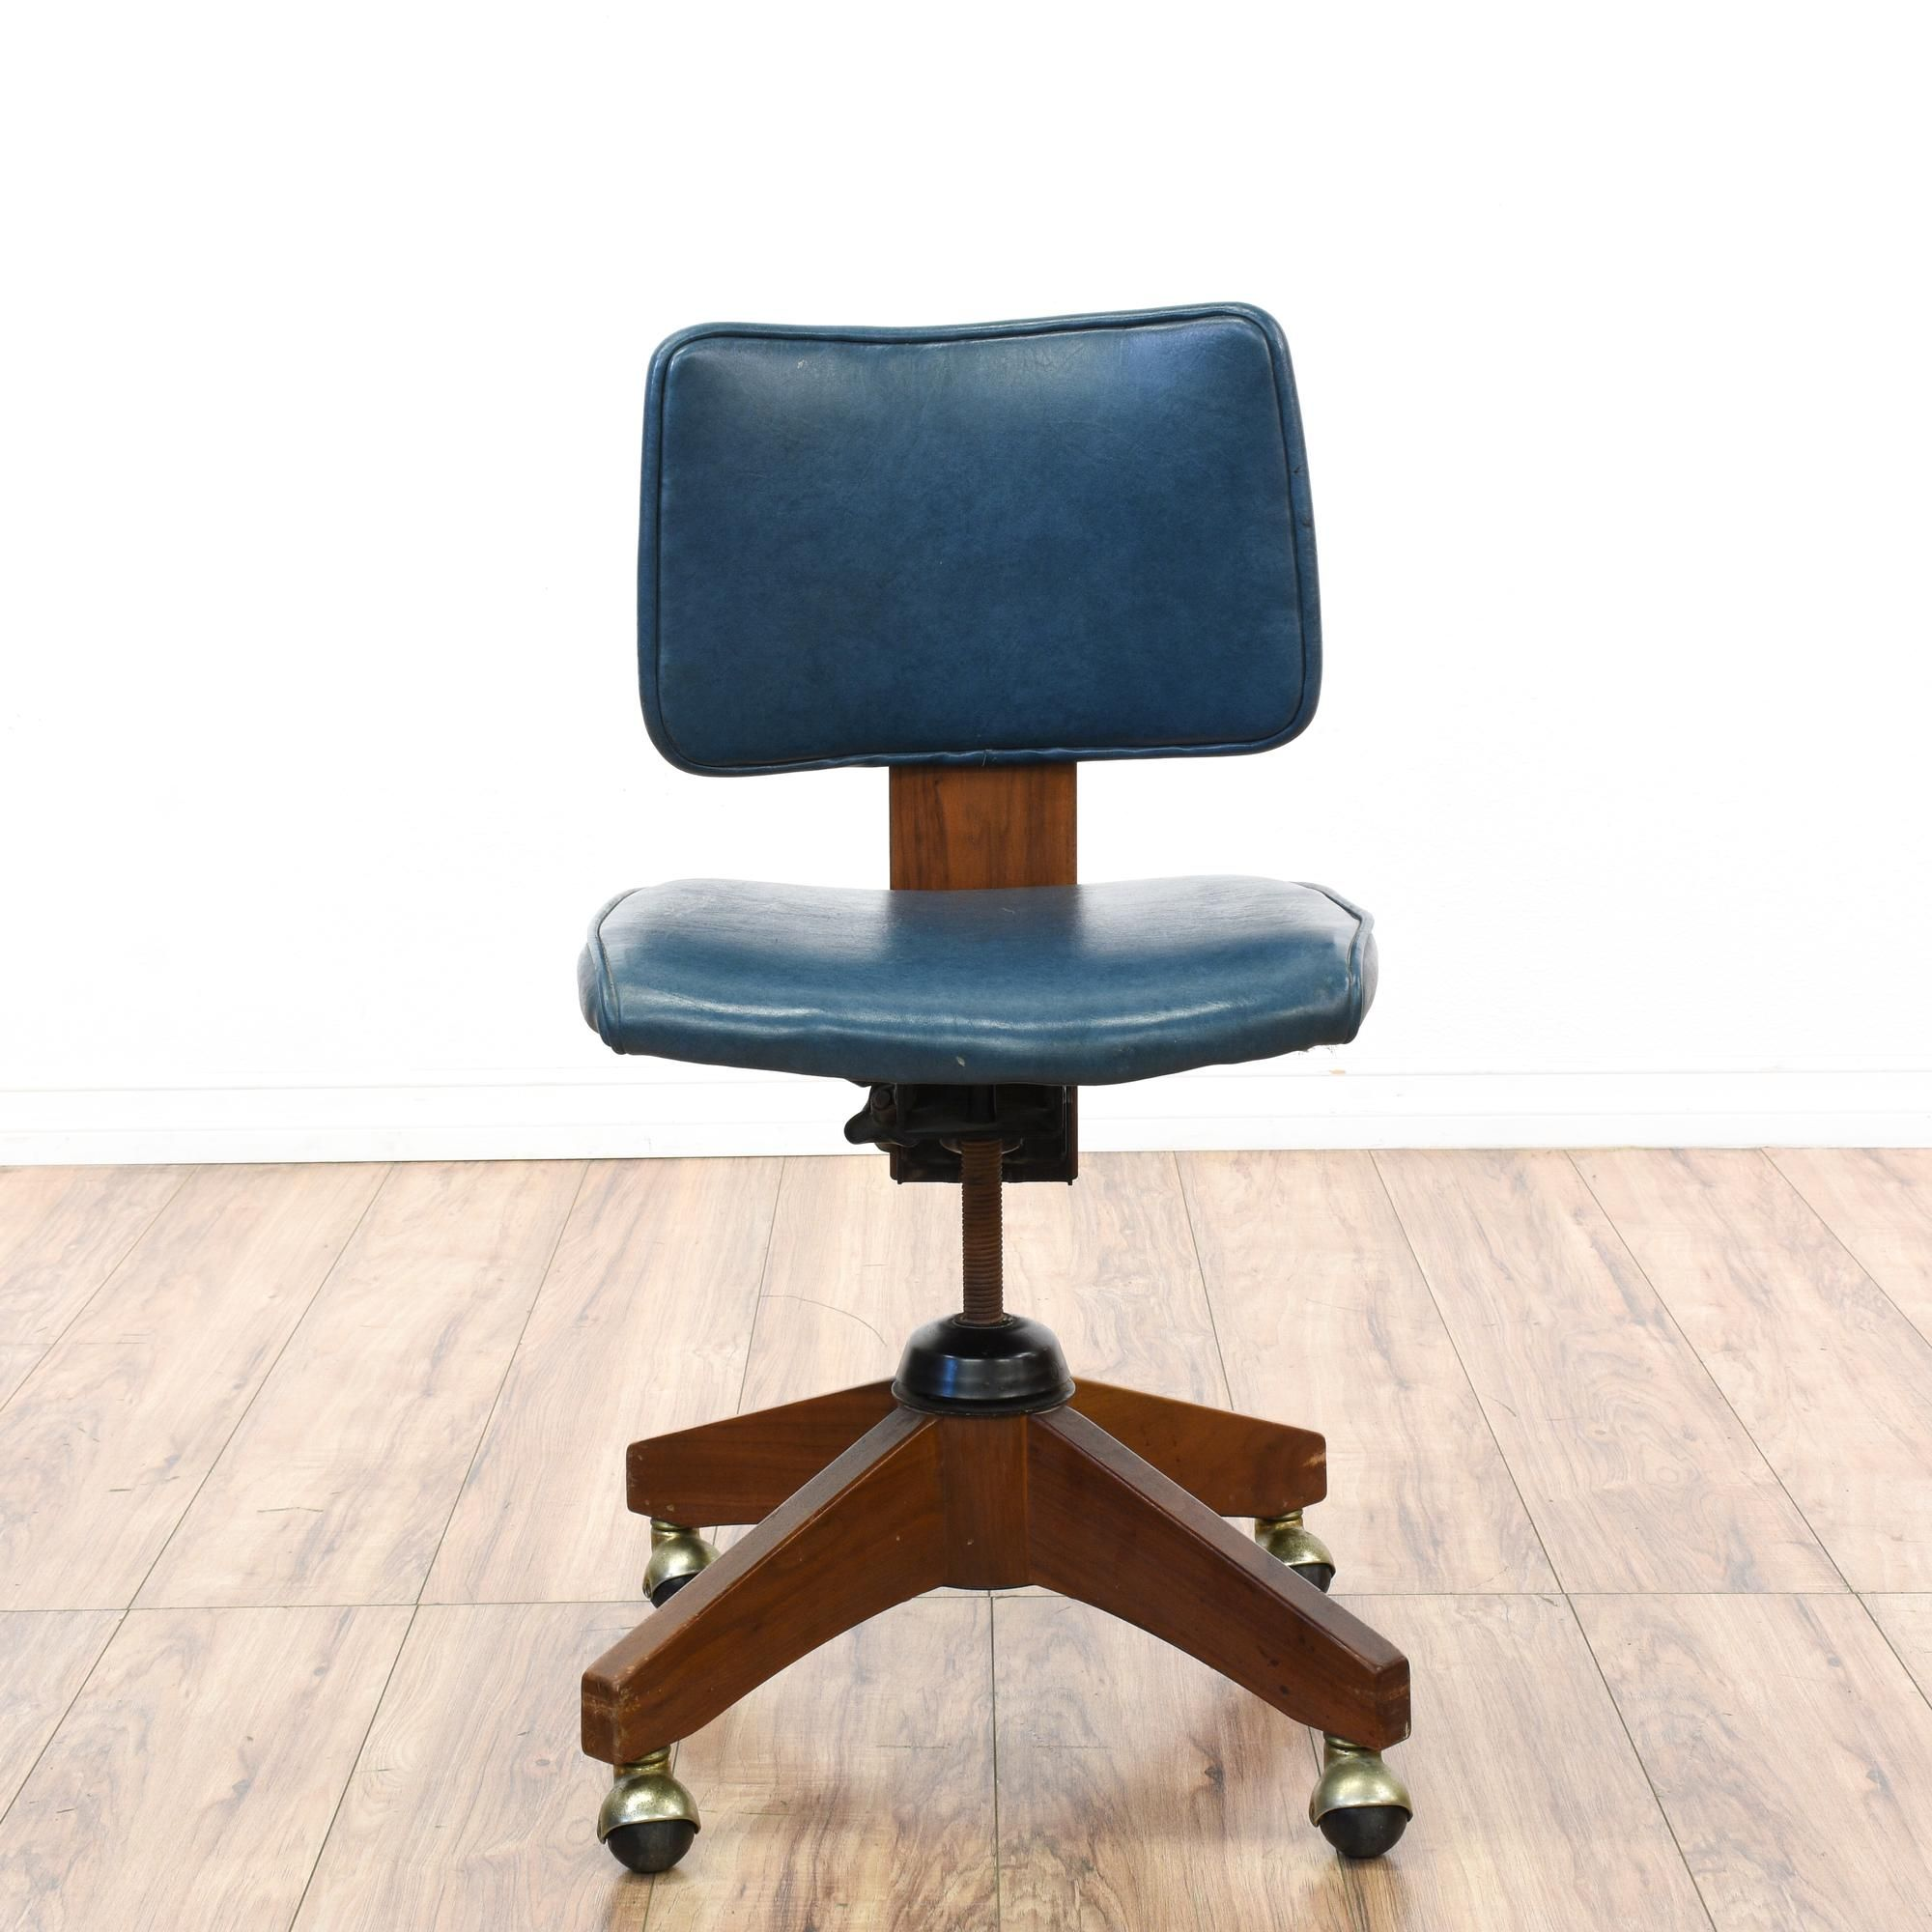 This Retro Office Chair Is Featured In A Solid Wood With Glossy Dark Cherry Finish